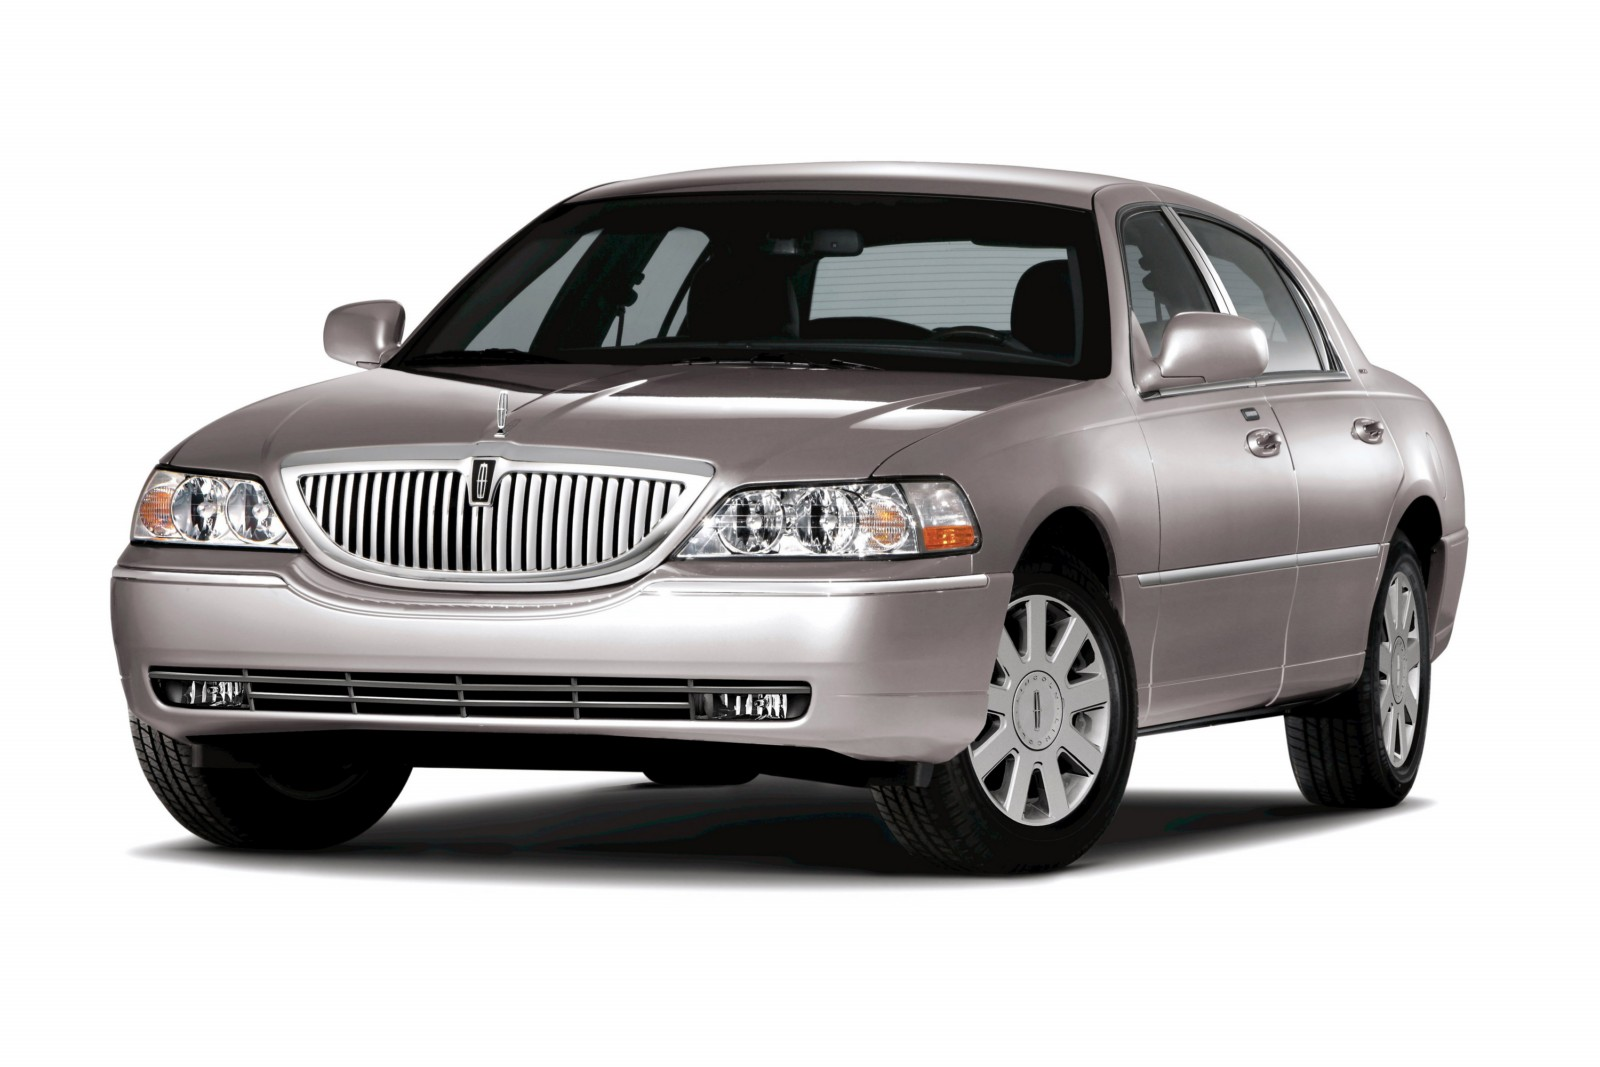 1992 Lincoln Town Car Review, Ratings, Specs, Prices, and Photos ...